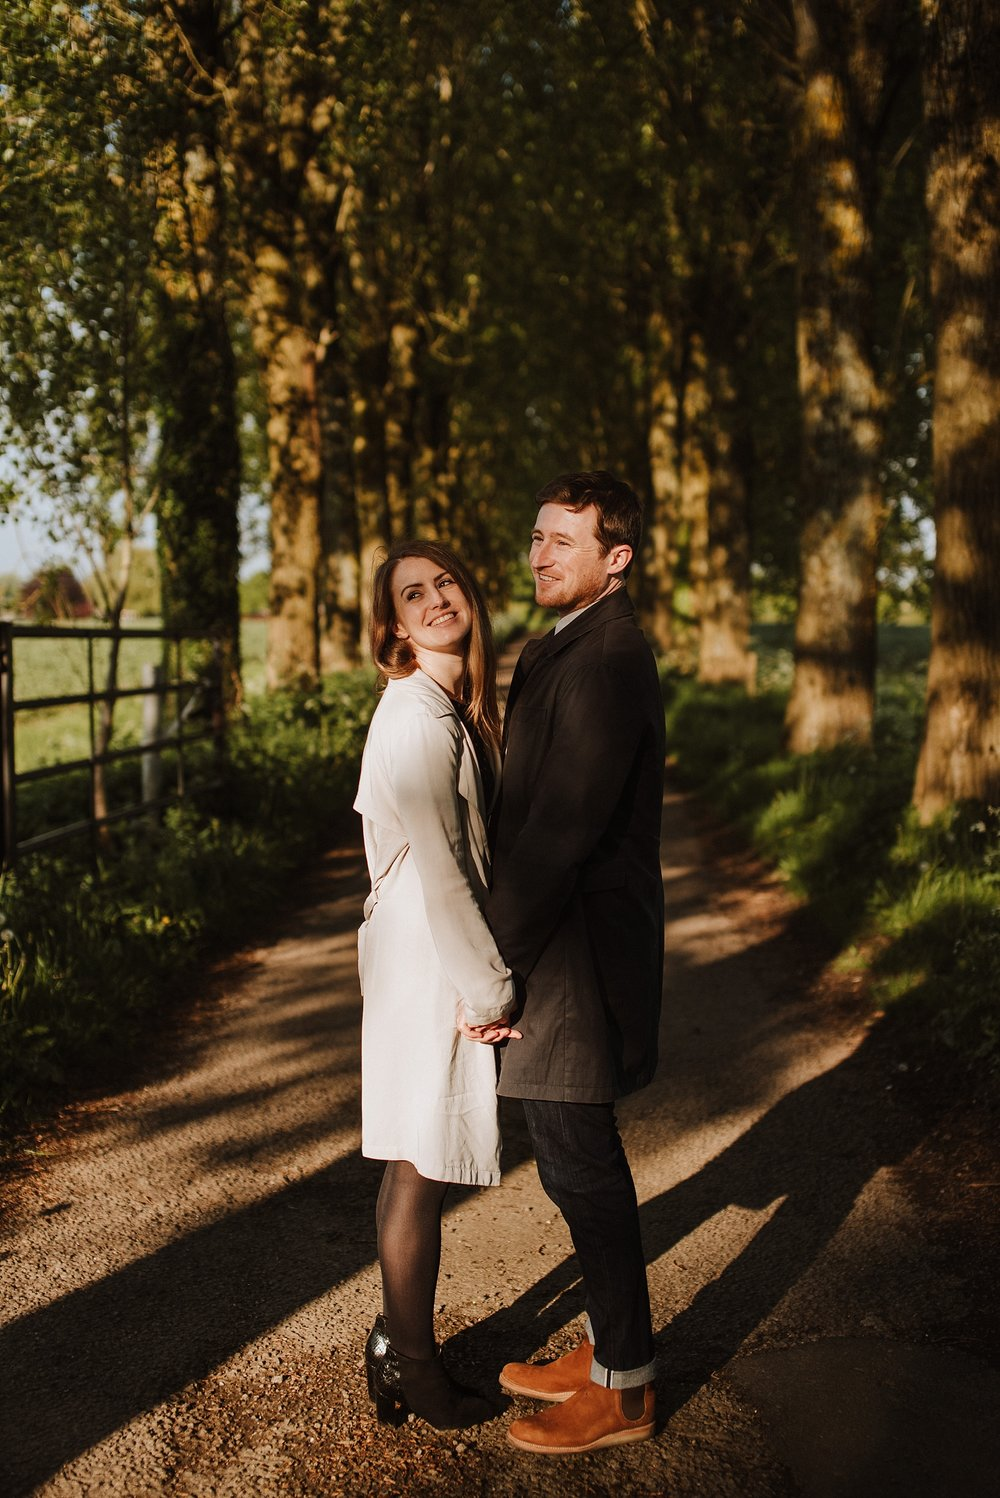 engagement shoot ideas in london